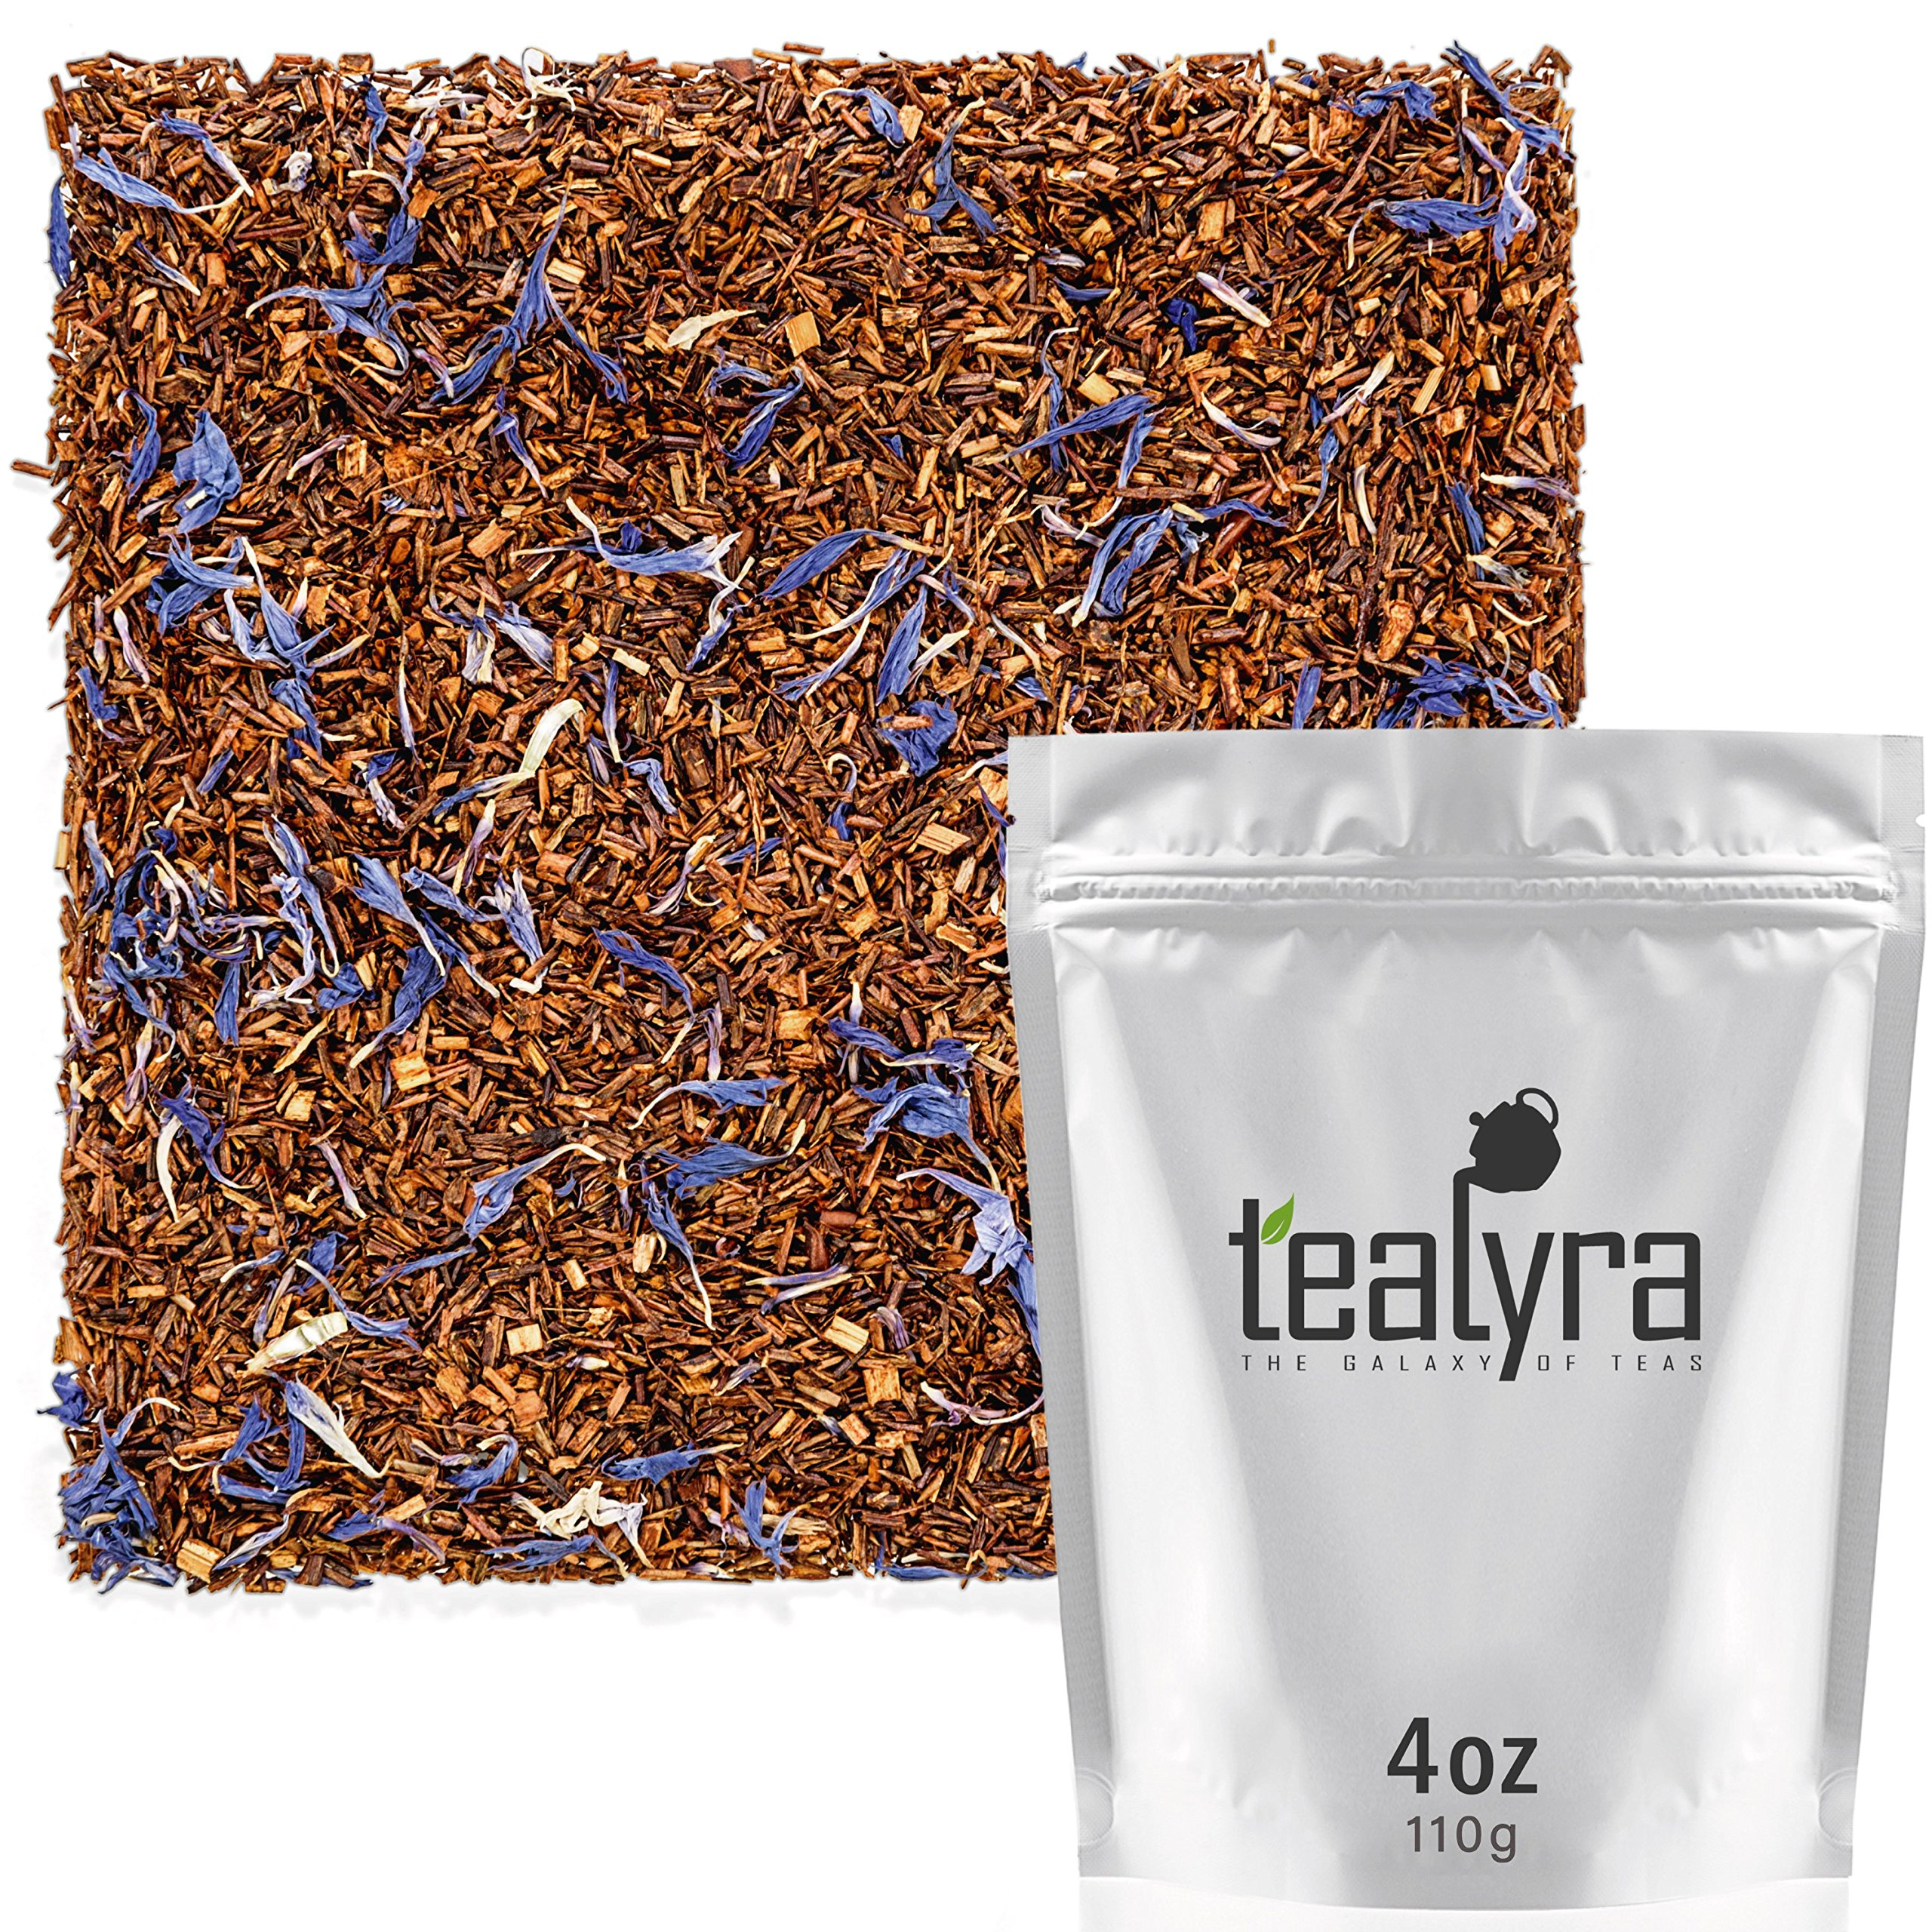 Tealyra - Rooibos Earl Grey - Caffeine-Free - Herbal Loose Leaf Tea - Red Bush Tea with Bergamot oil - Claming and Relaxing Blend - 110g (4-ounce) by Tealyra